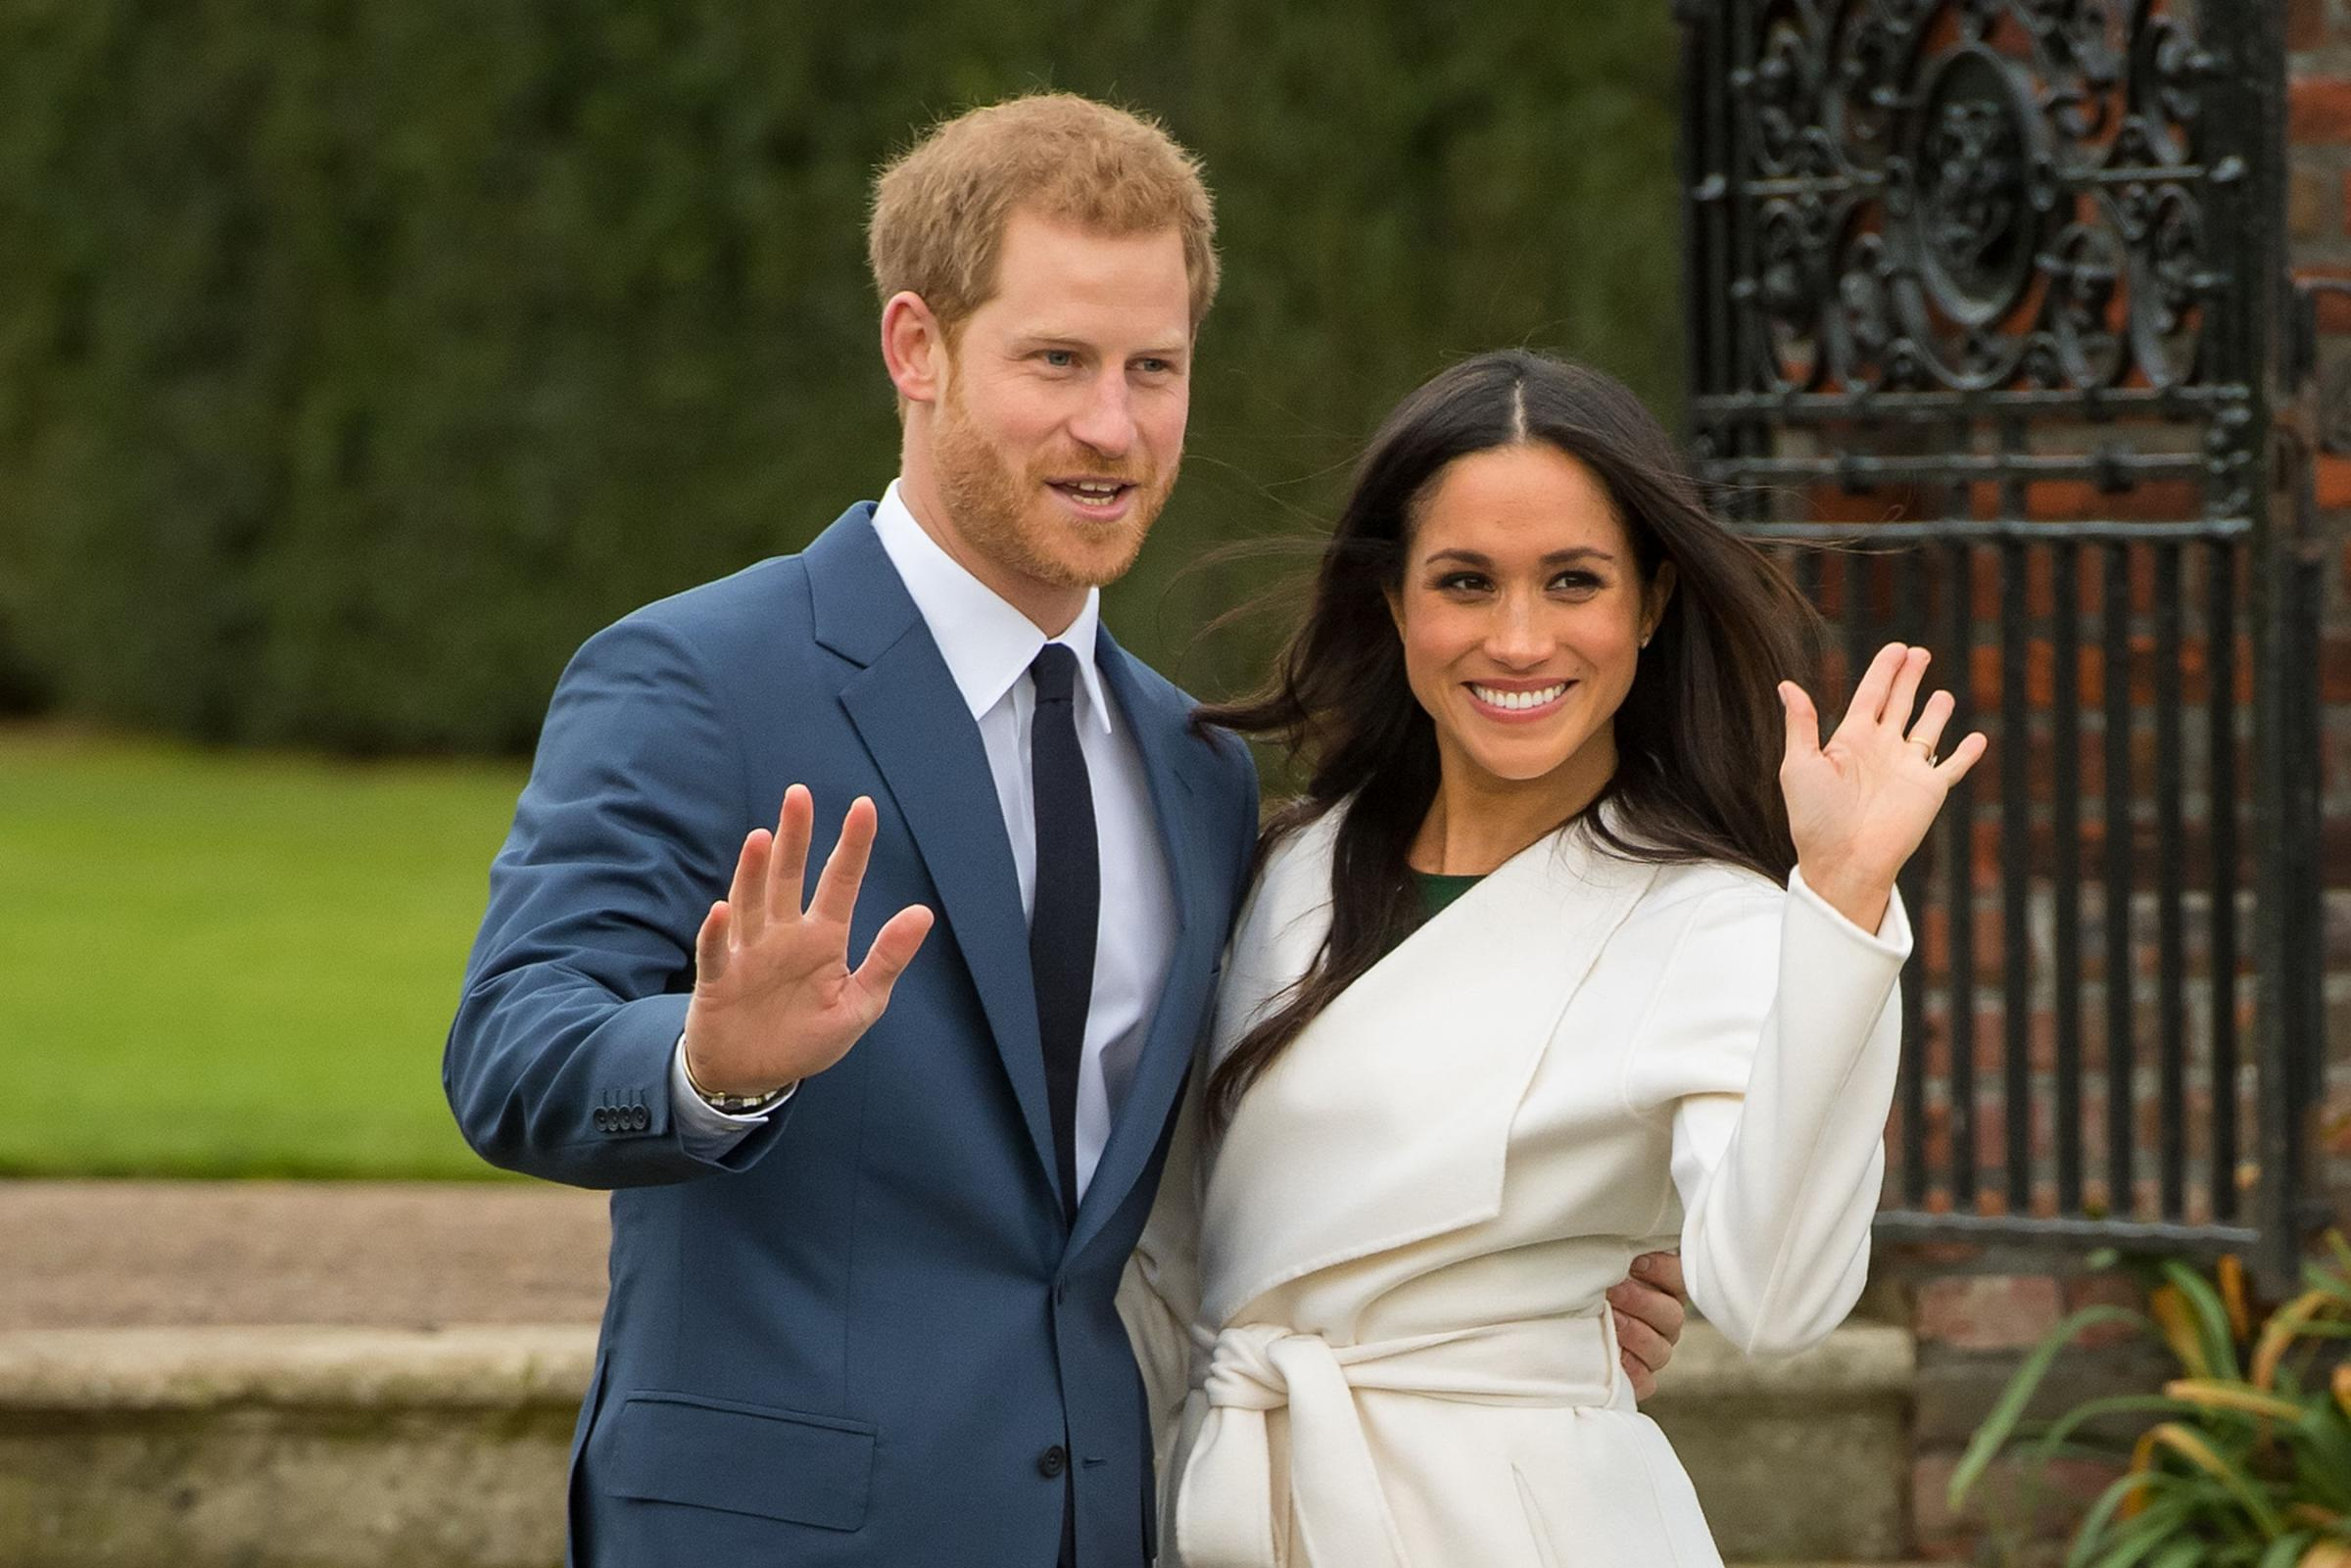 Prince Harry and Meghan Markle. Pic: Dominic Lipinski/PA Wire